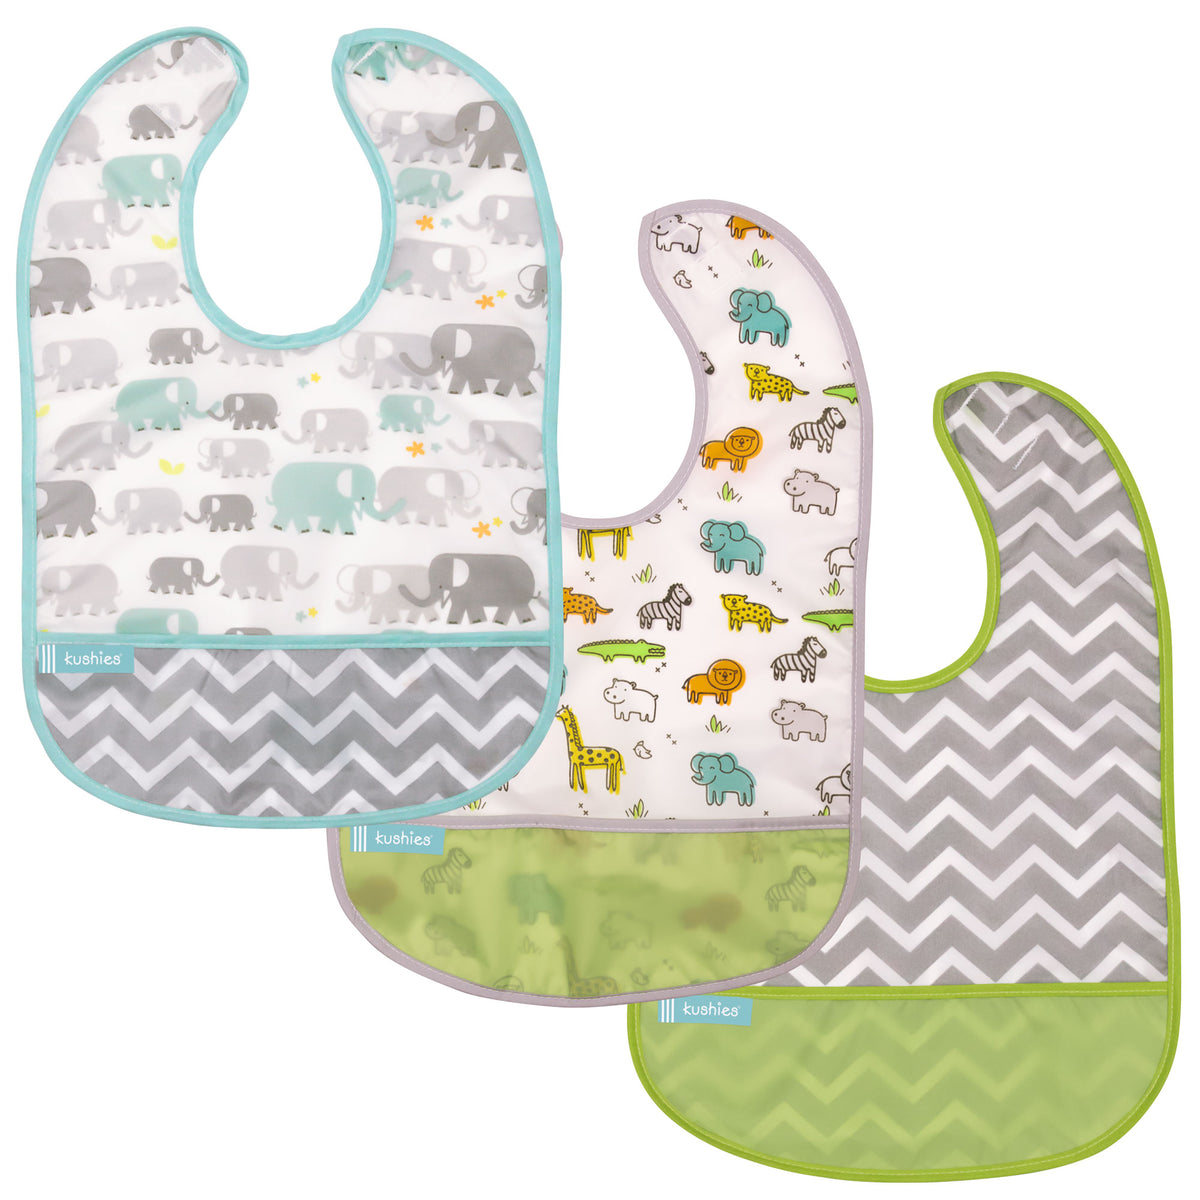 White Elephants + White Little Safari + Green Chevron | Cleanbib 3pack